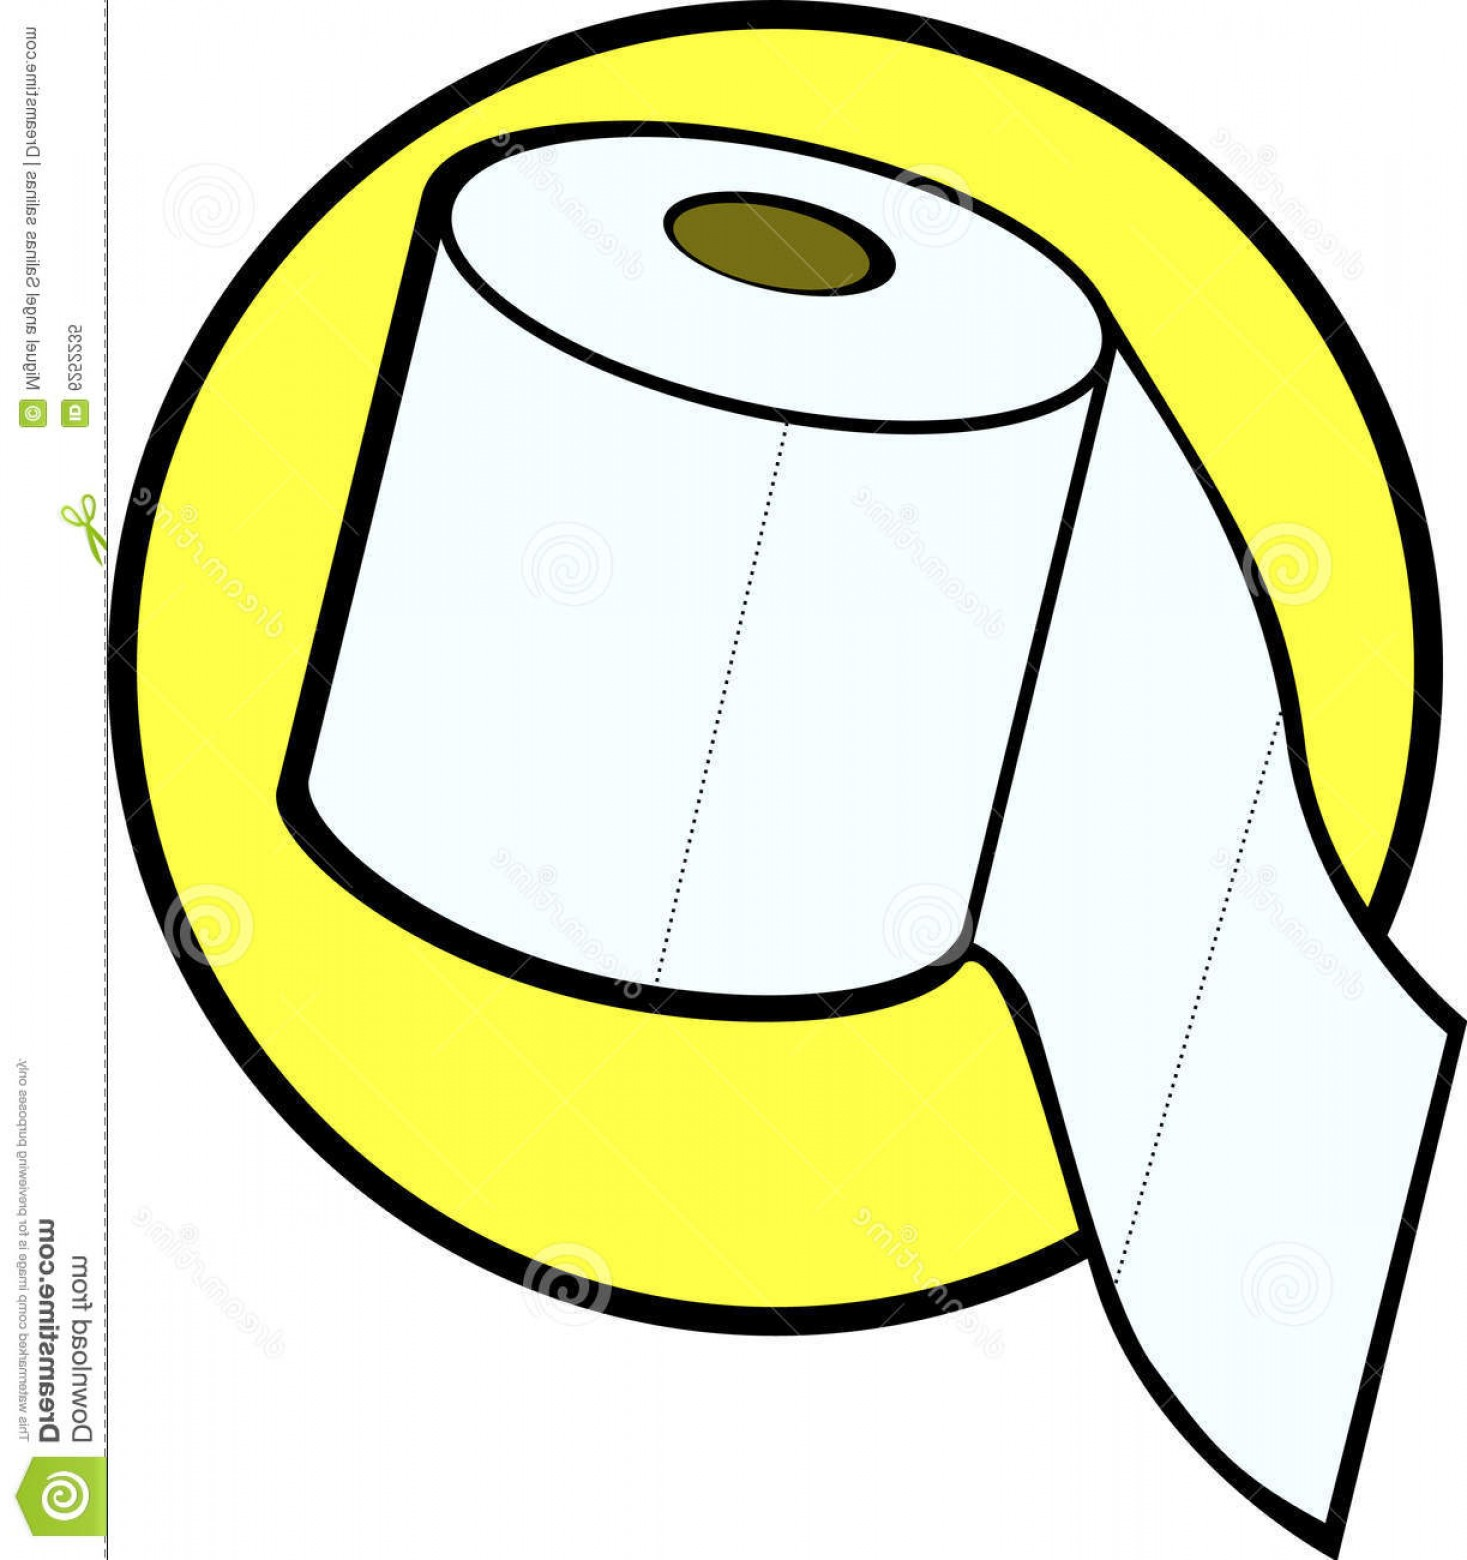 Toilet Paper Vector: Royalty Free Stock Photo Toilet Paper Roll Vector Illustration Image